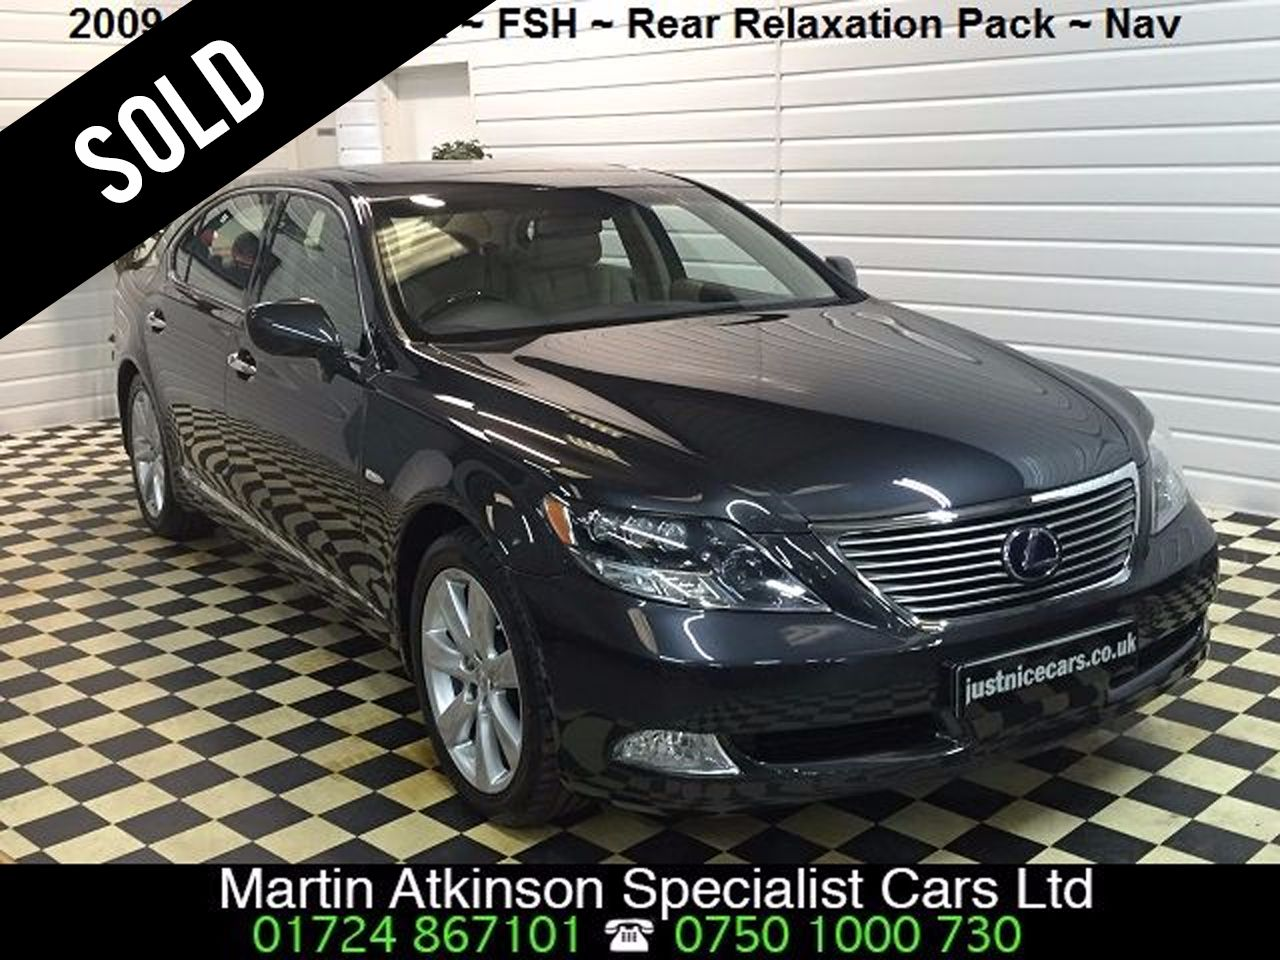 Lexus LS 600h L 5.0 4dr CVT Auto (RSR) Rear Relaxation Pack Saloon Hybrid Grey